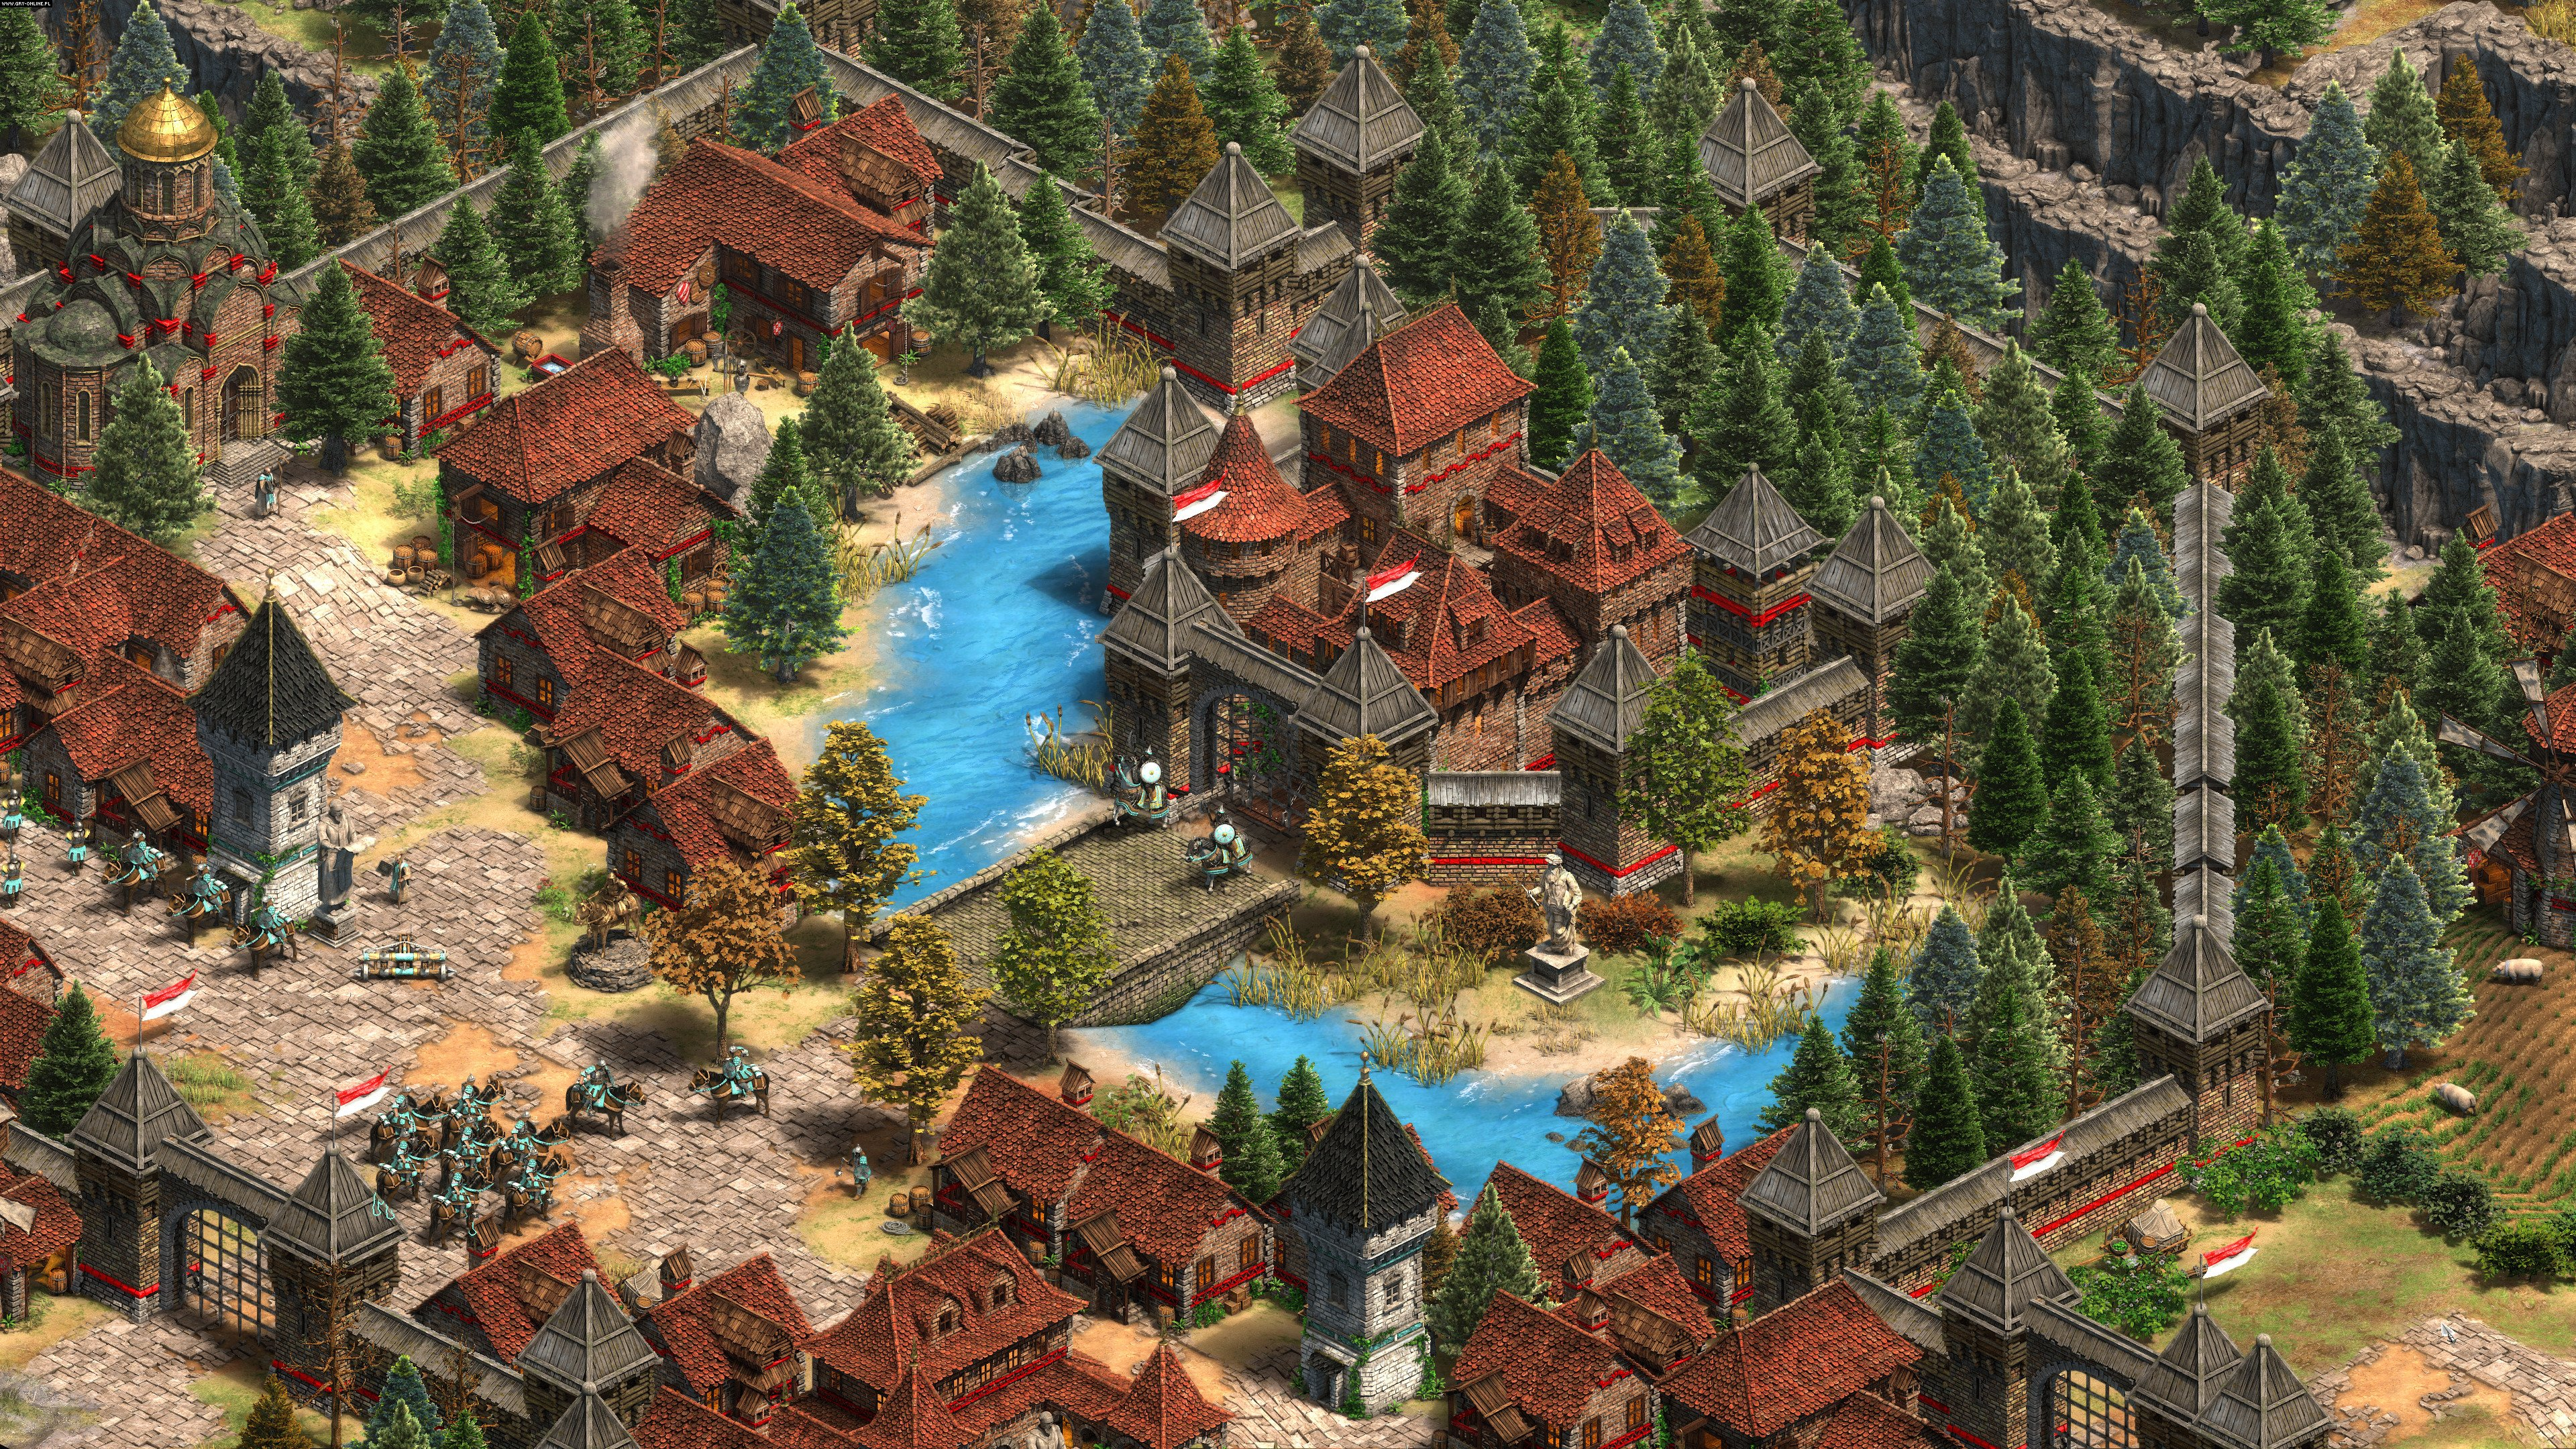 Age of Empires II: Definitive Edition PC Games Image 1/24, Forgotten Empires, Xbox Game Studios / Microsoft Studios